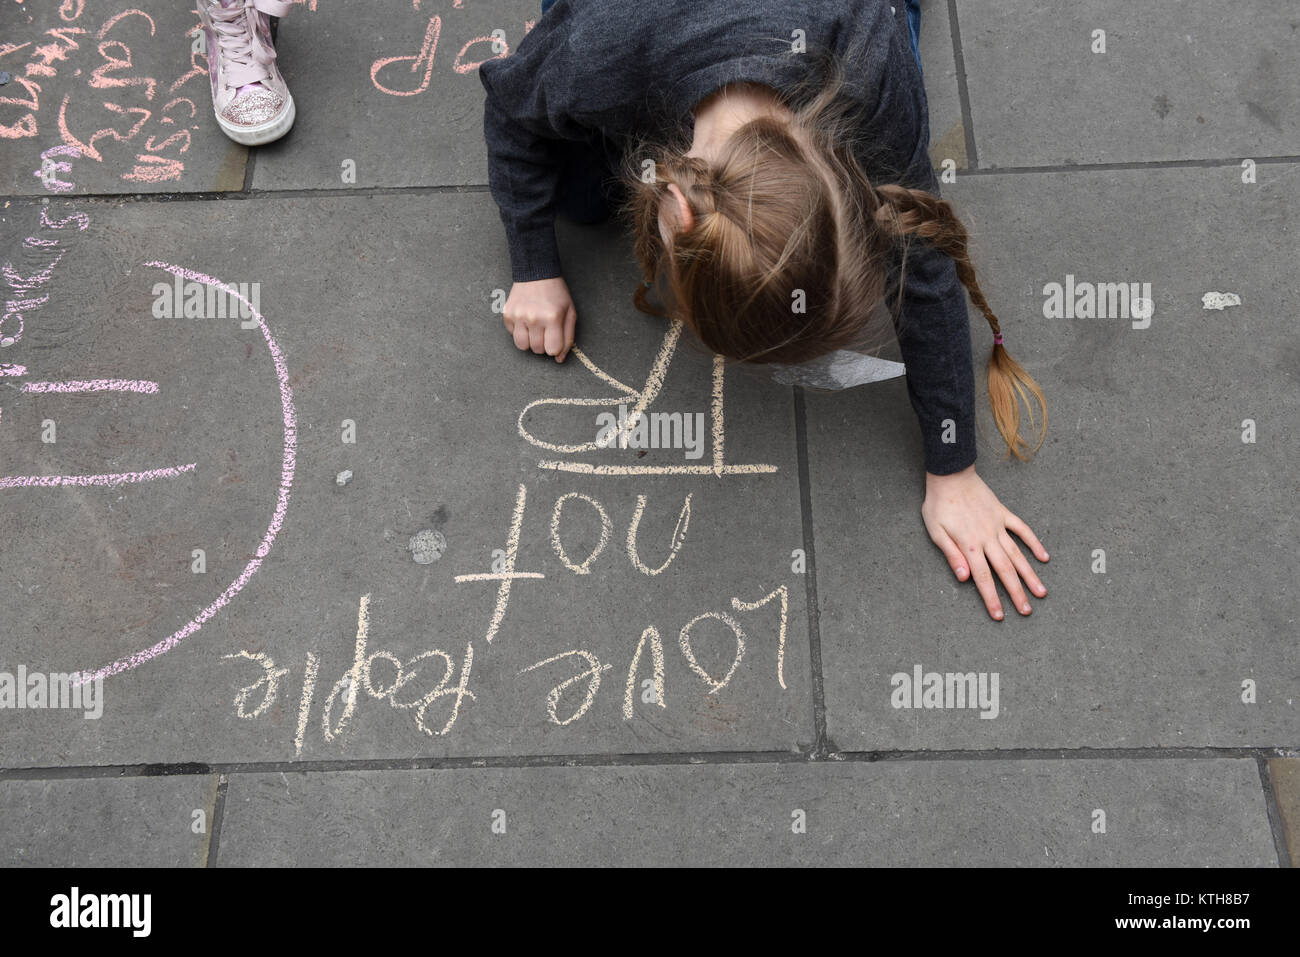 A child protester is writing anti-Trump and anti-racism message reading 'Love people not Trump' on the pavement - Stock Image